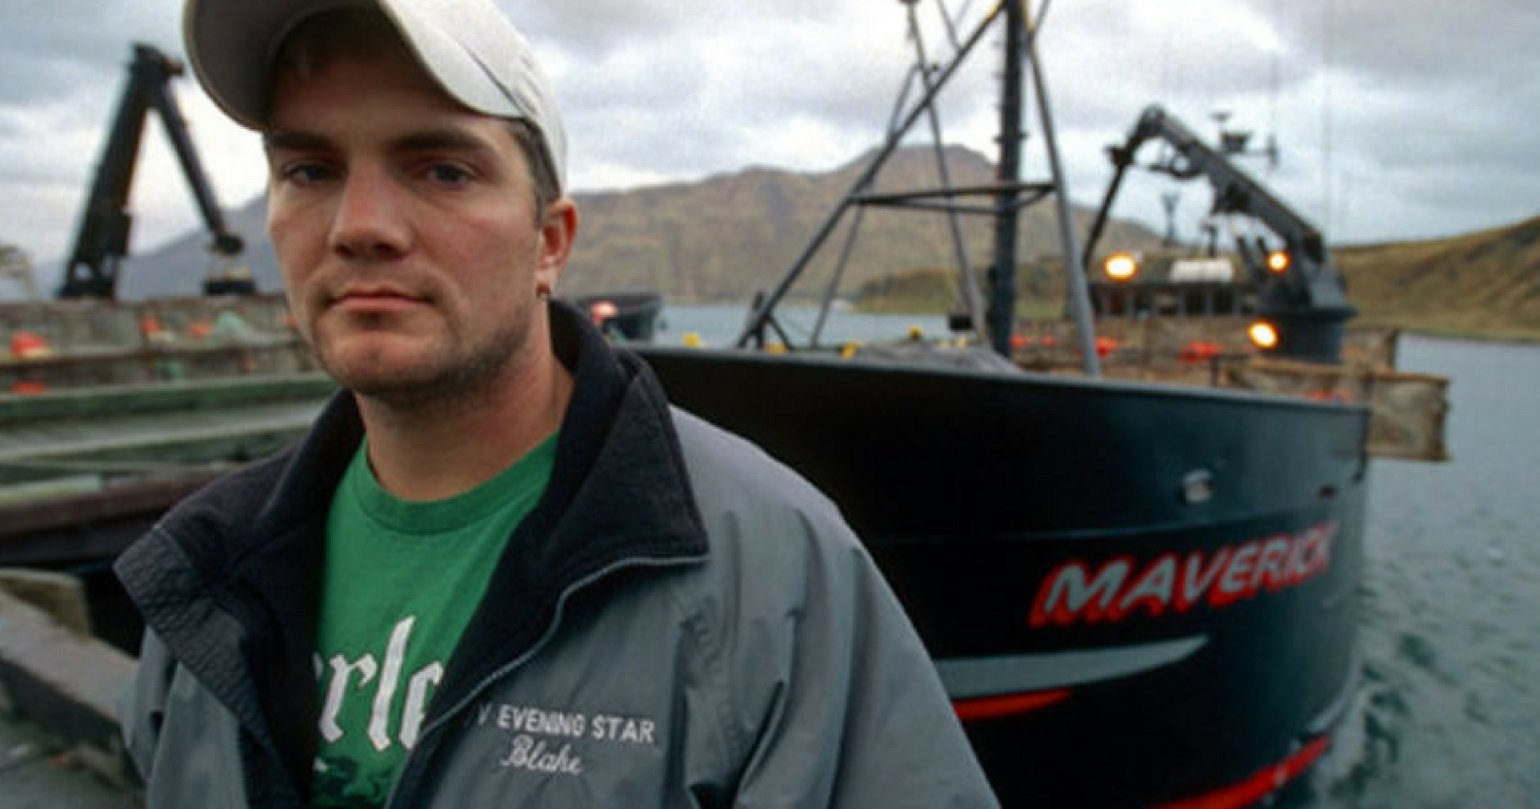 Blake Painter From 'Deadliest Catch' Has Reportedly Died